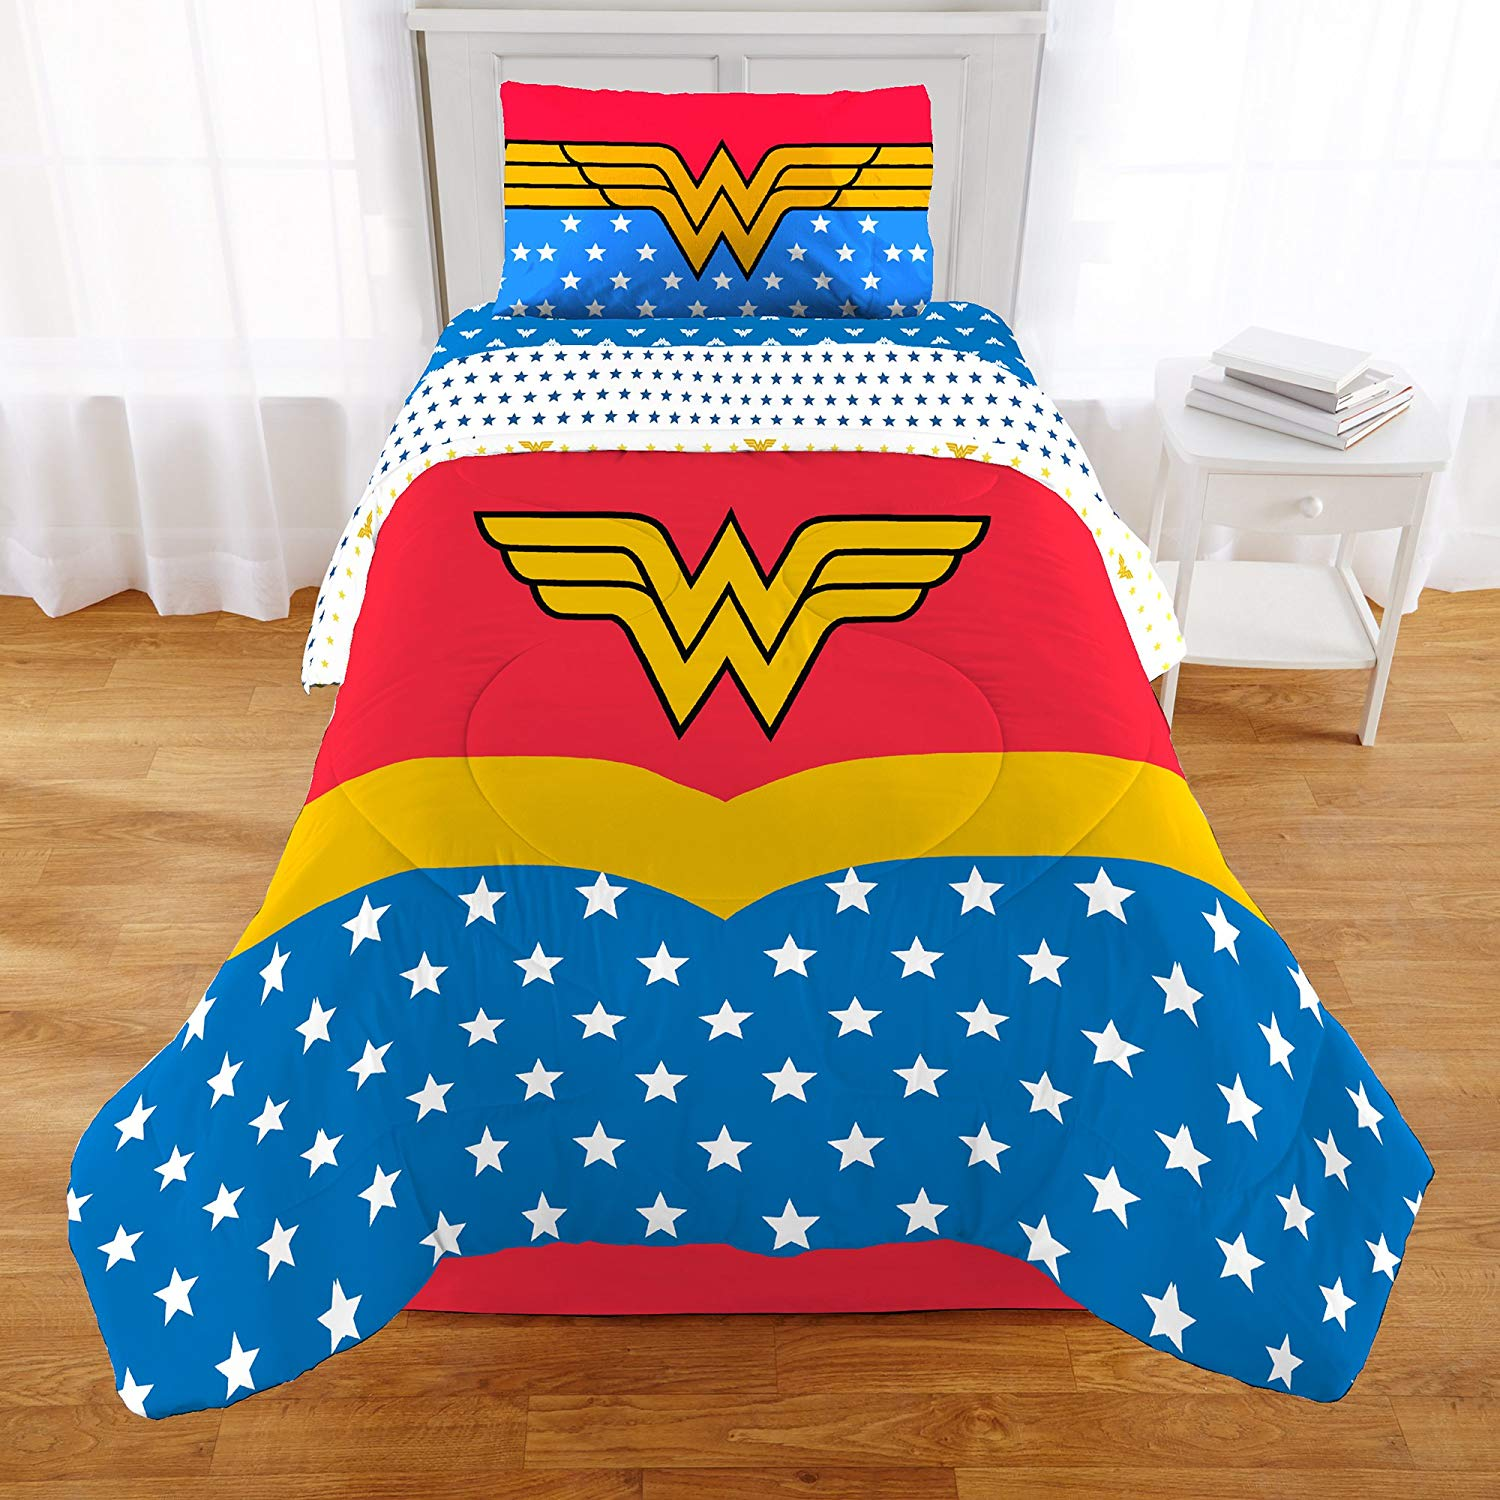 45138b734a Get Quotations · TN 2 Piece Kids Girls Blue Red Wonder Woman Comforter Twin Full  Set